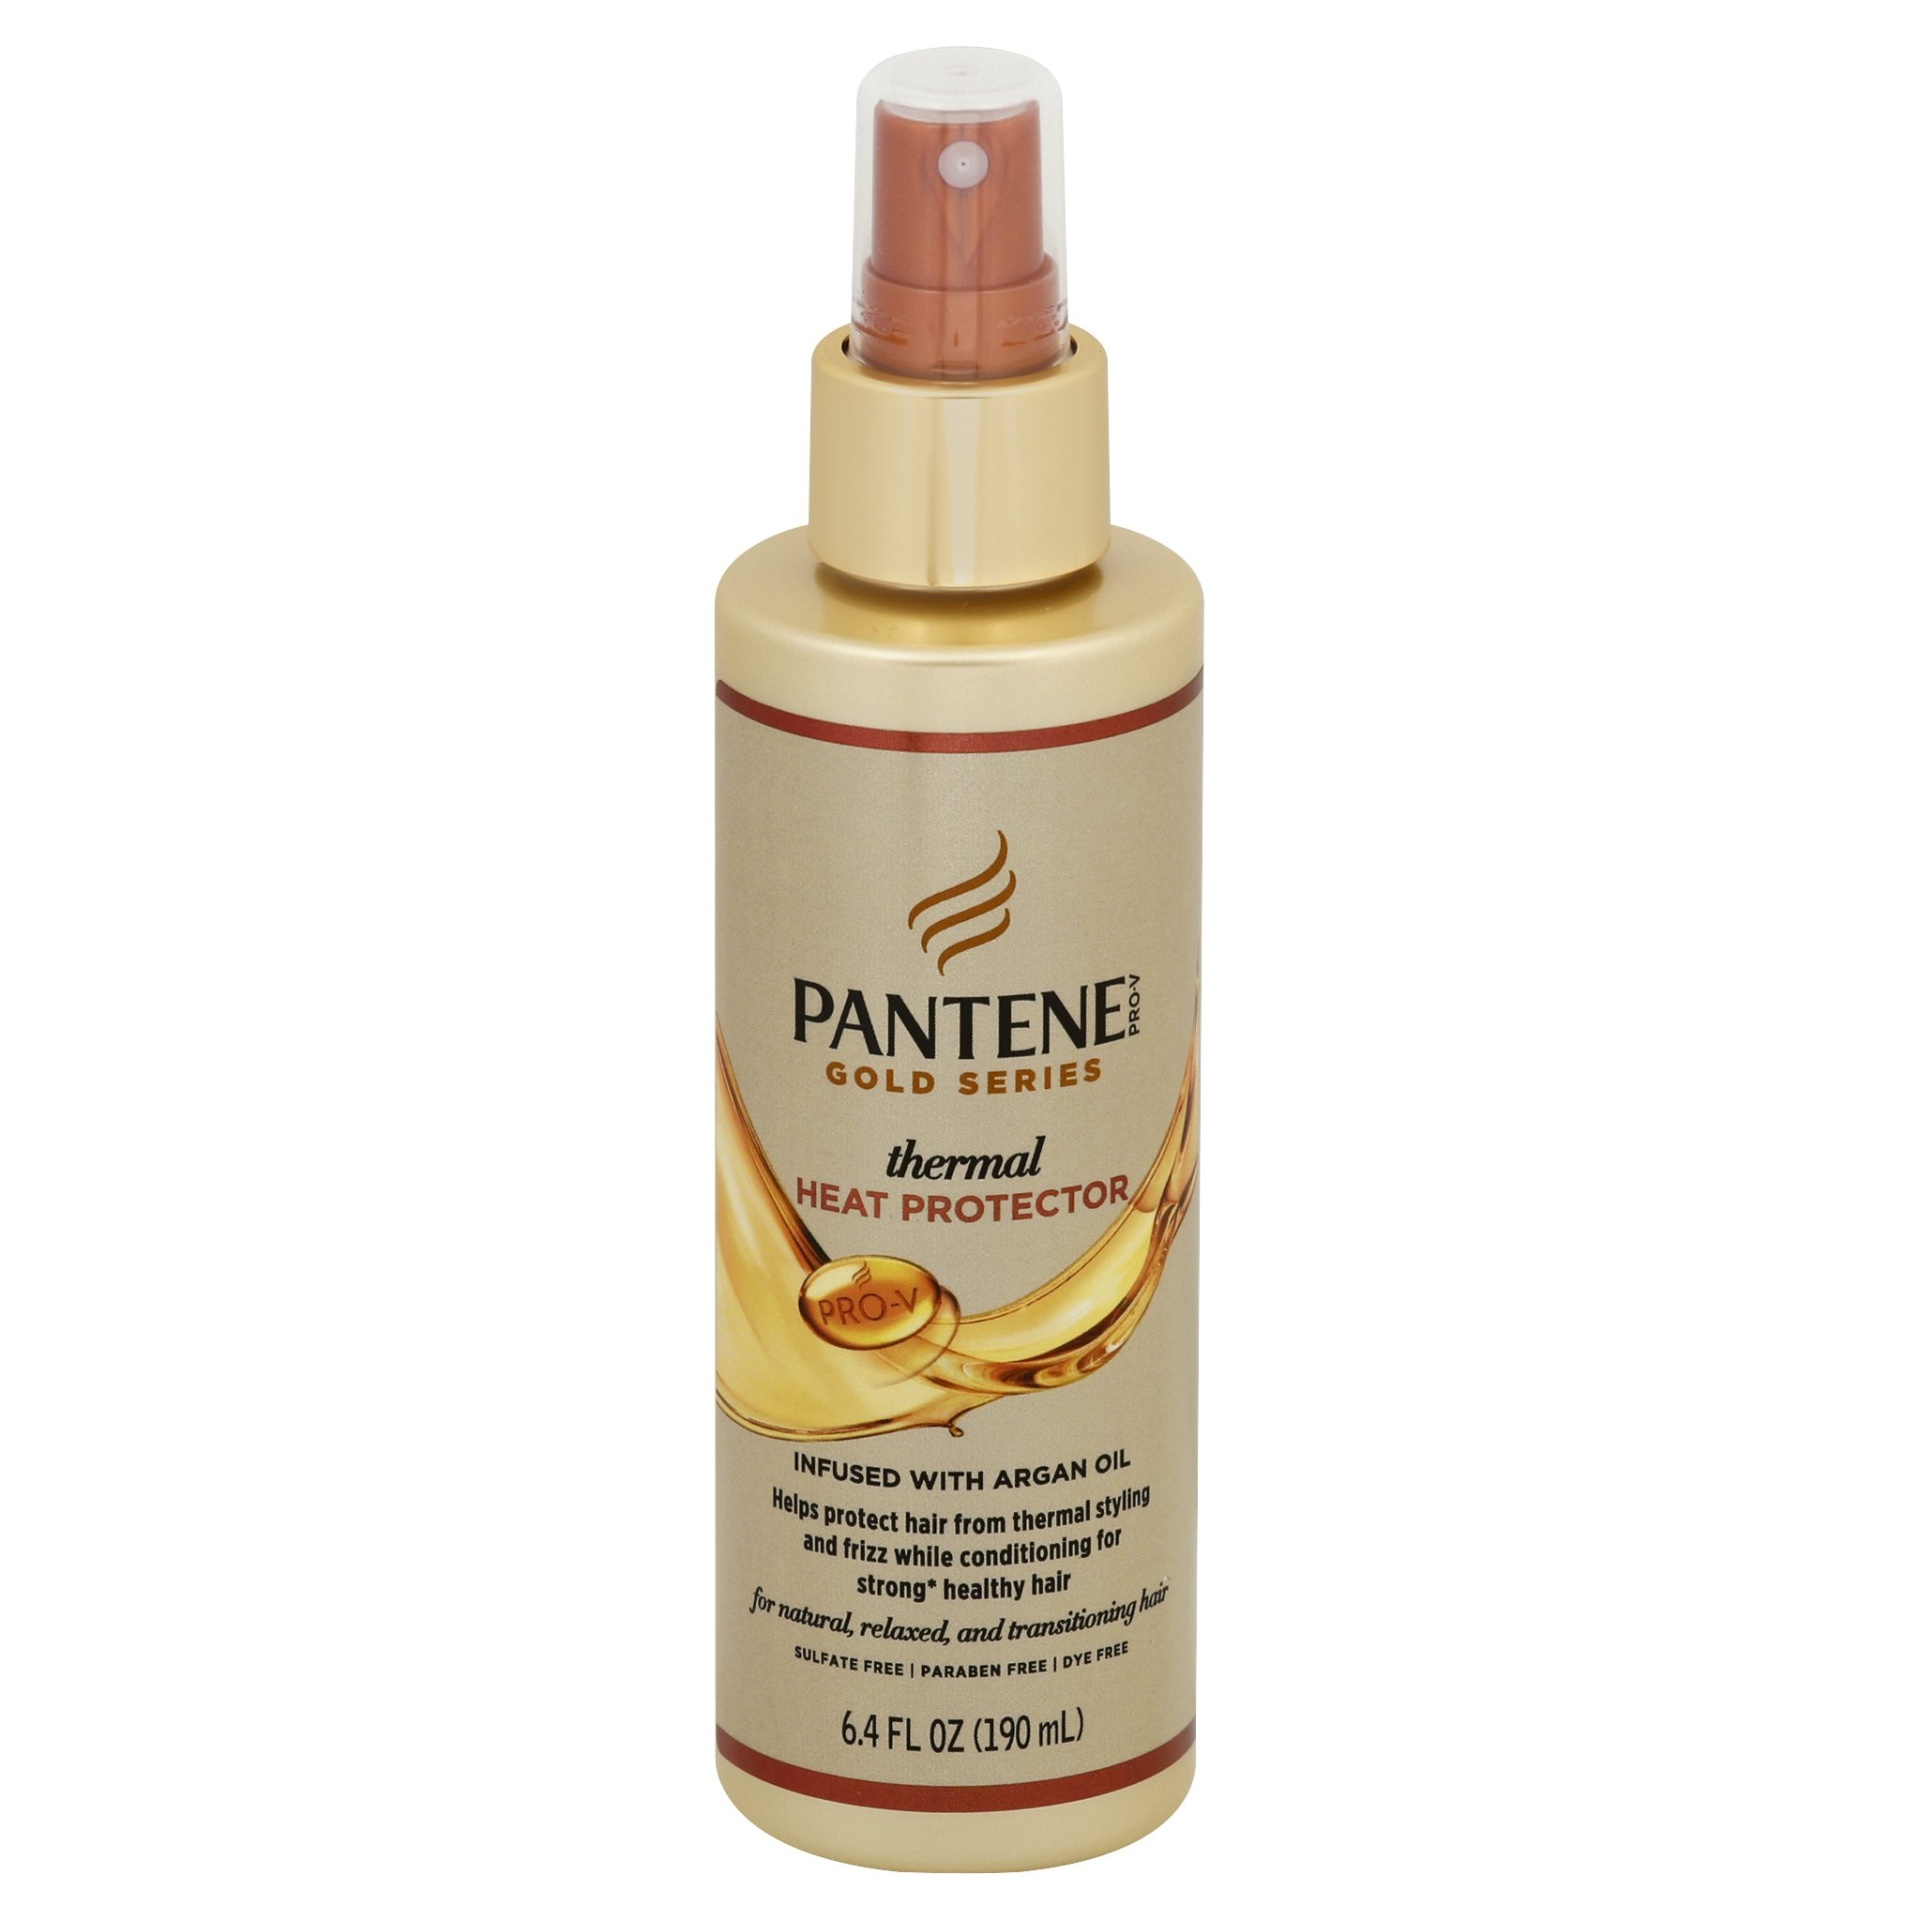 slide 1 of 1, Pantene Pro-V Gold Series Thermal Heat Protector Infused with Argan Oil,